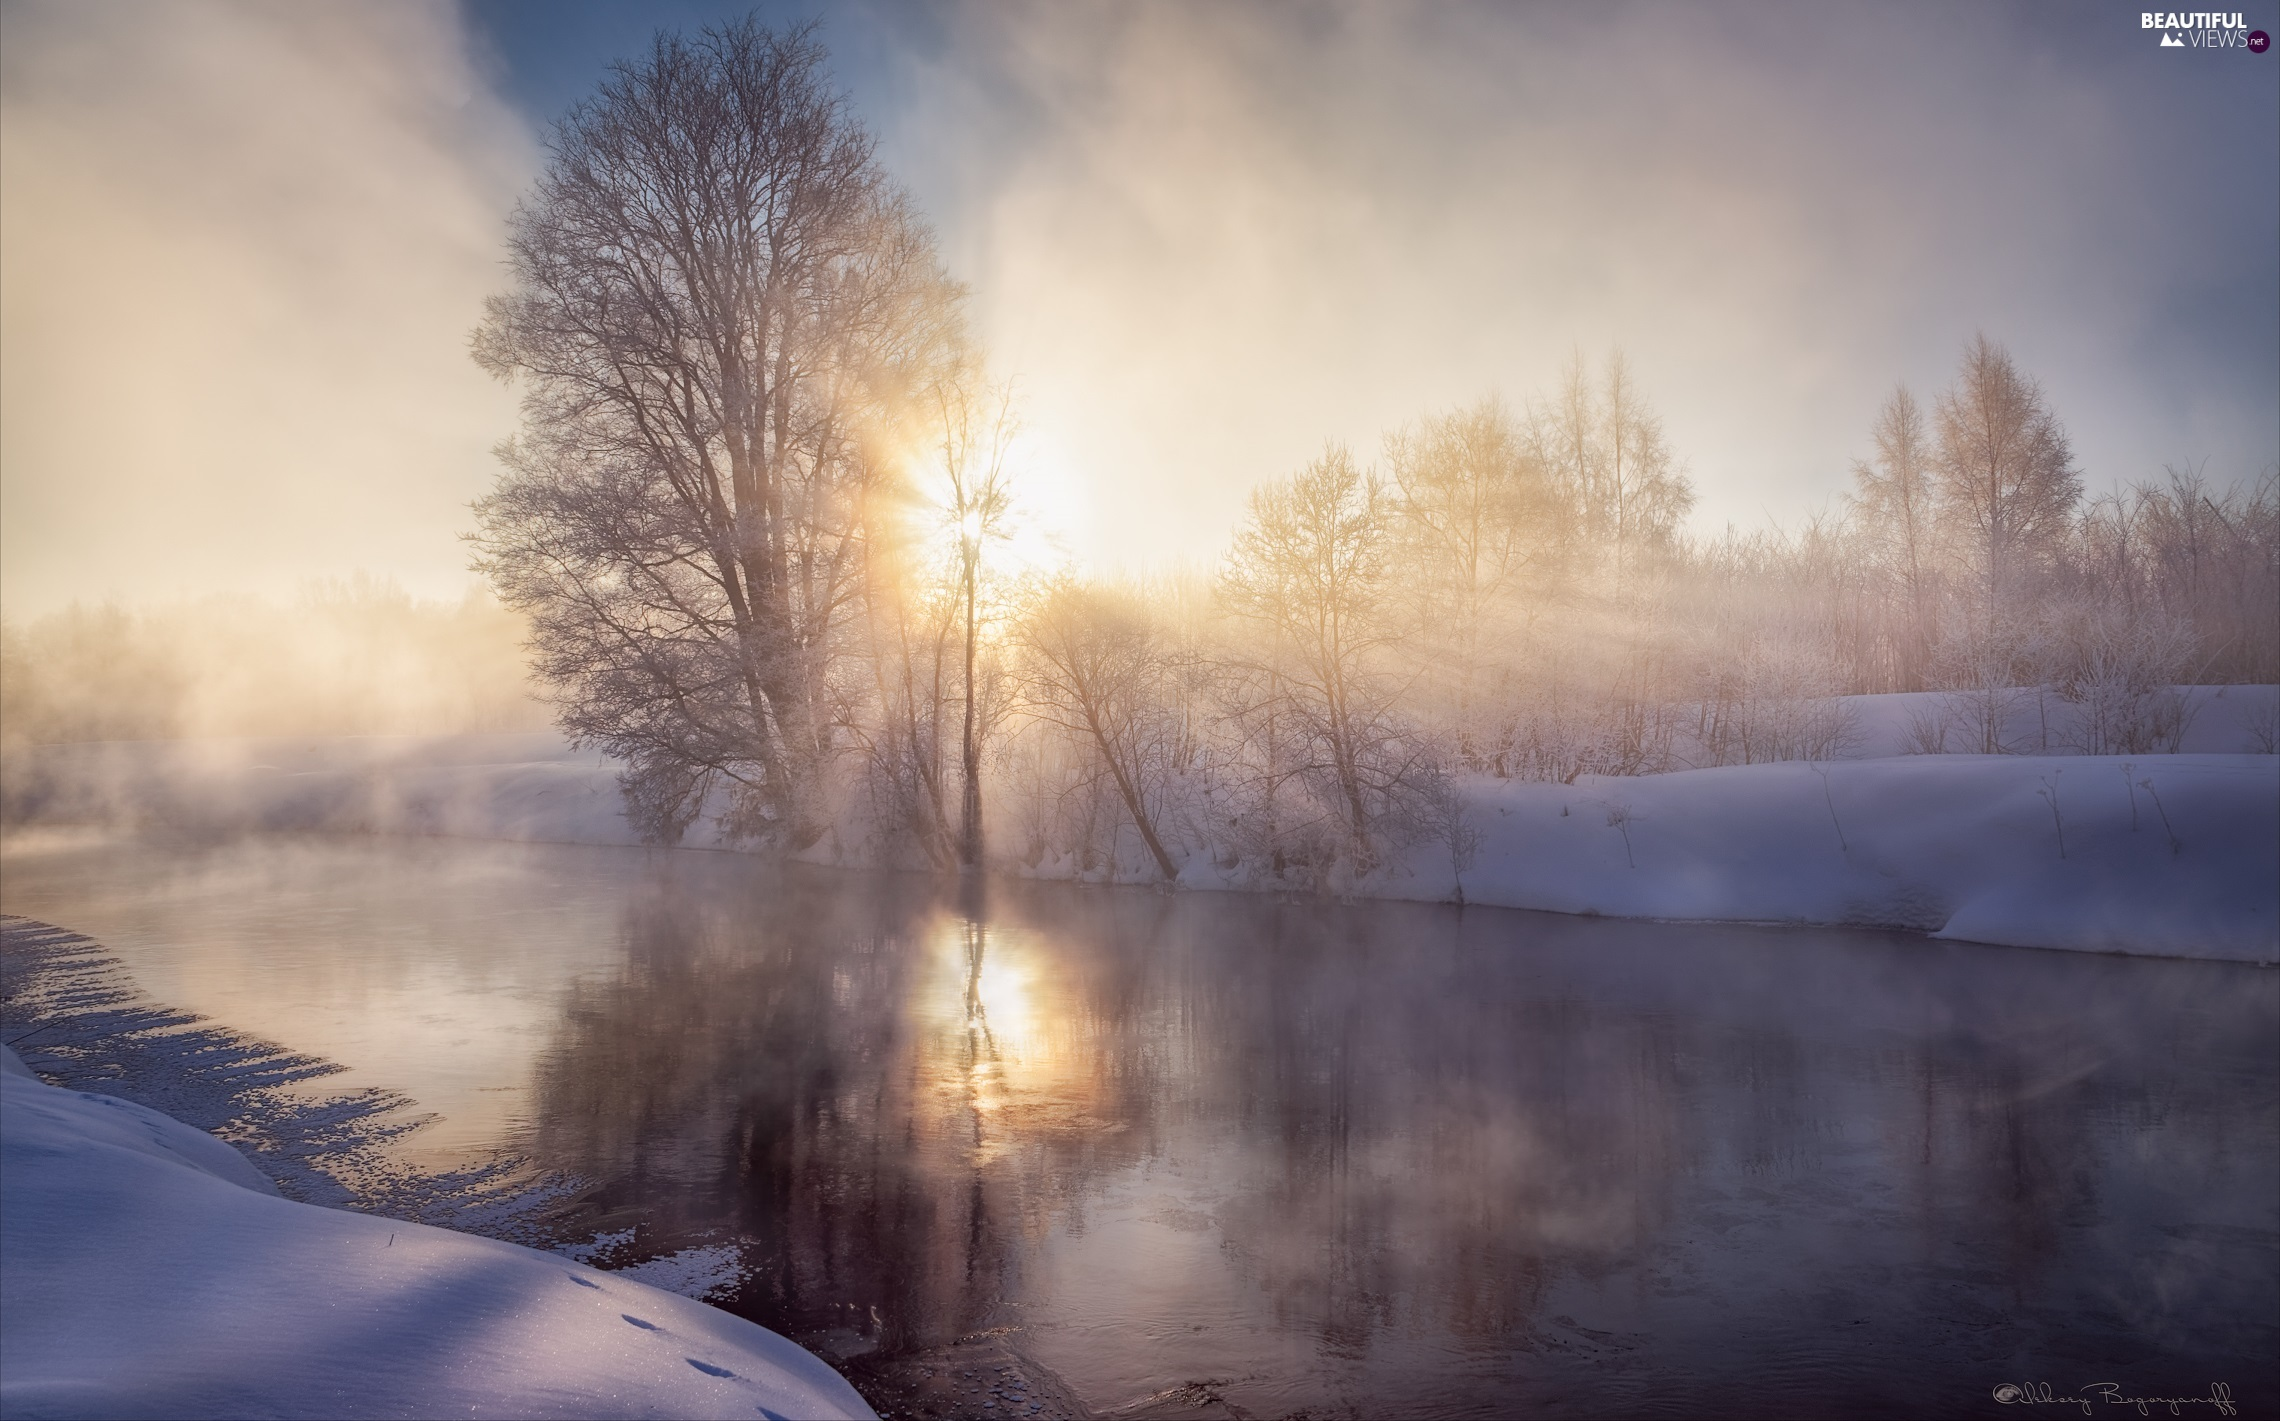 River, winter, viewes, rays of the Sun, trees, Fog